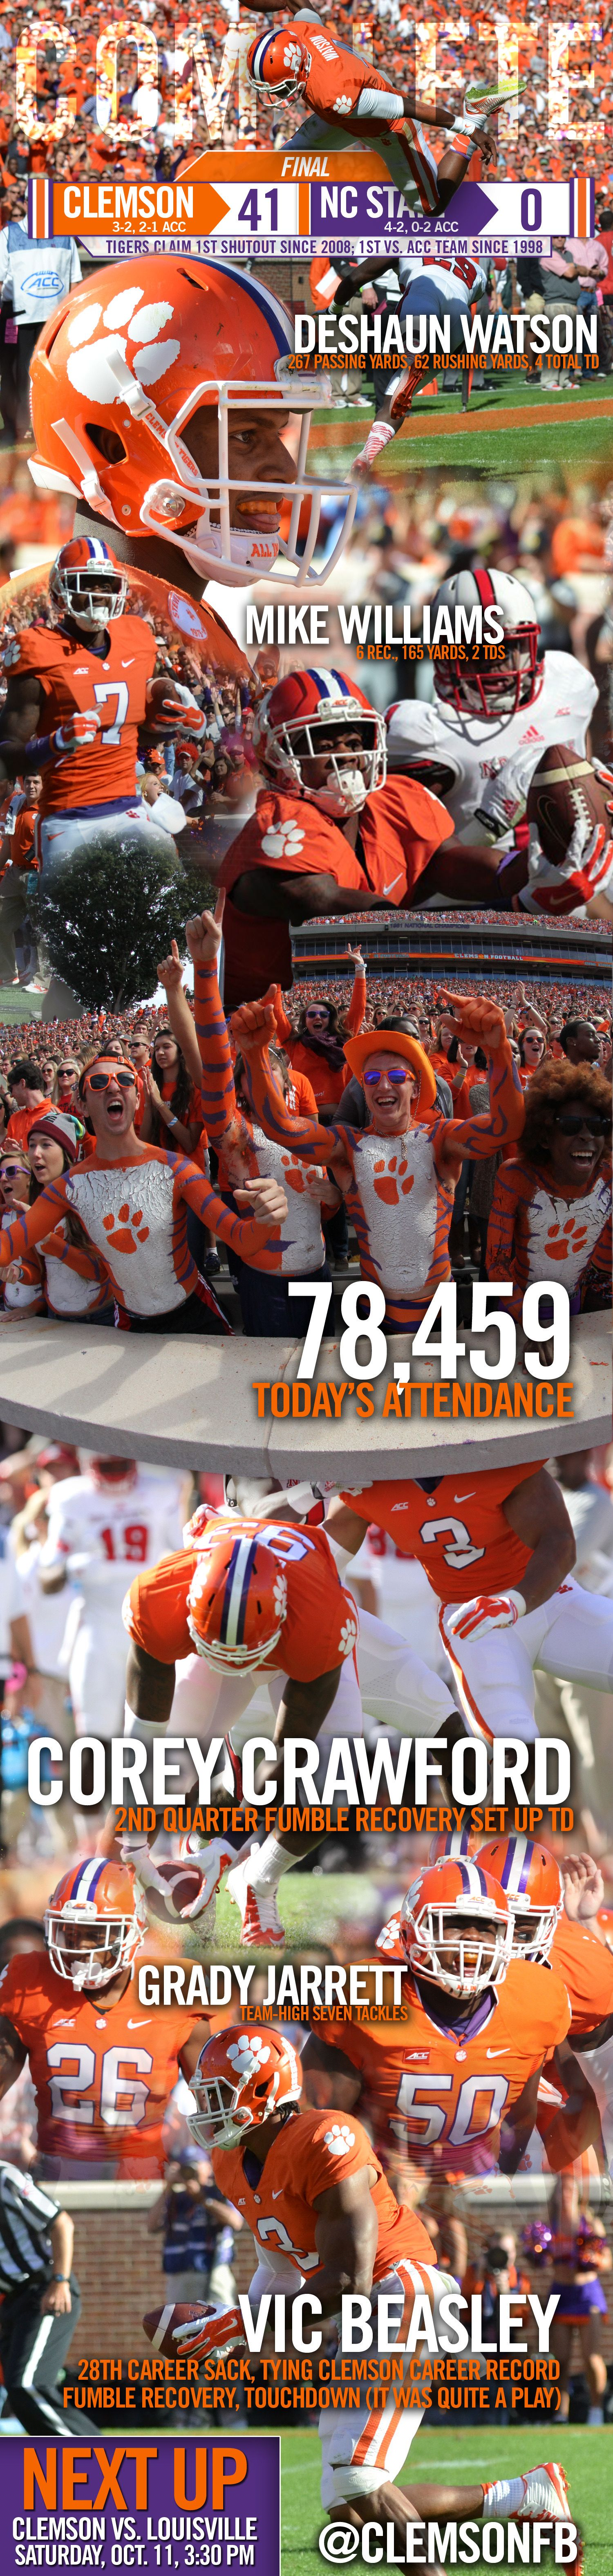 Pin by Cathy Nunnery on Clemson/Tailgating in 2020